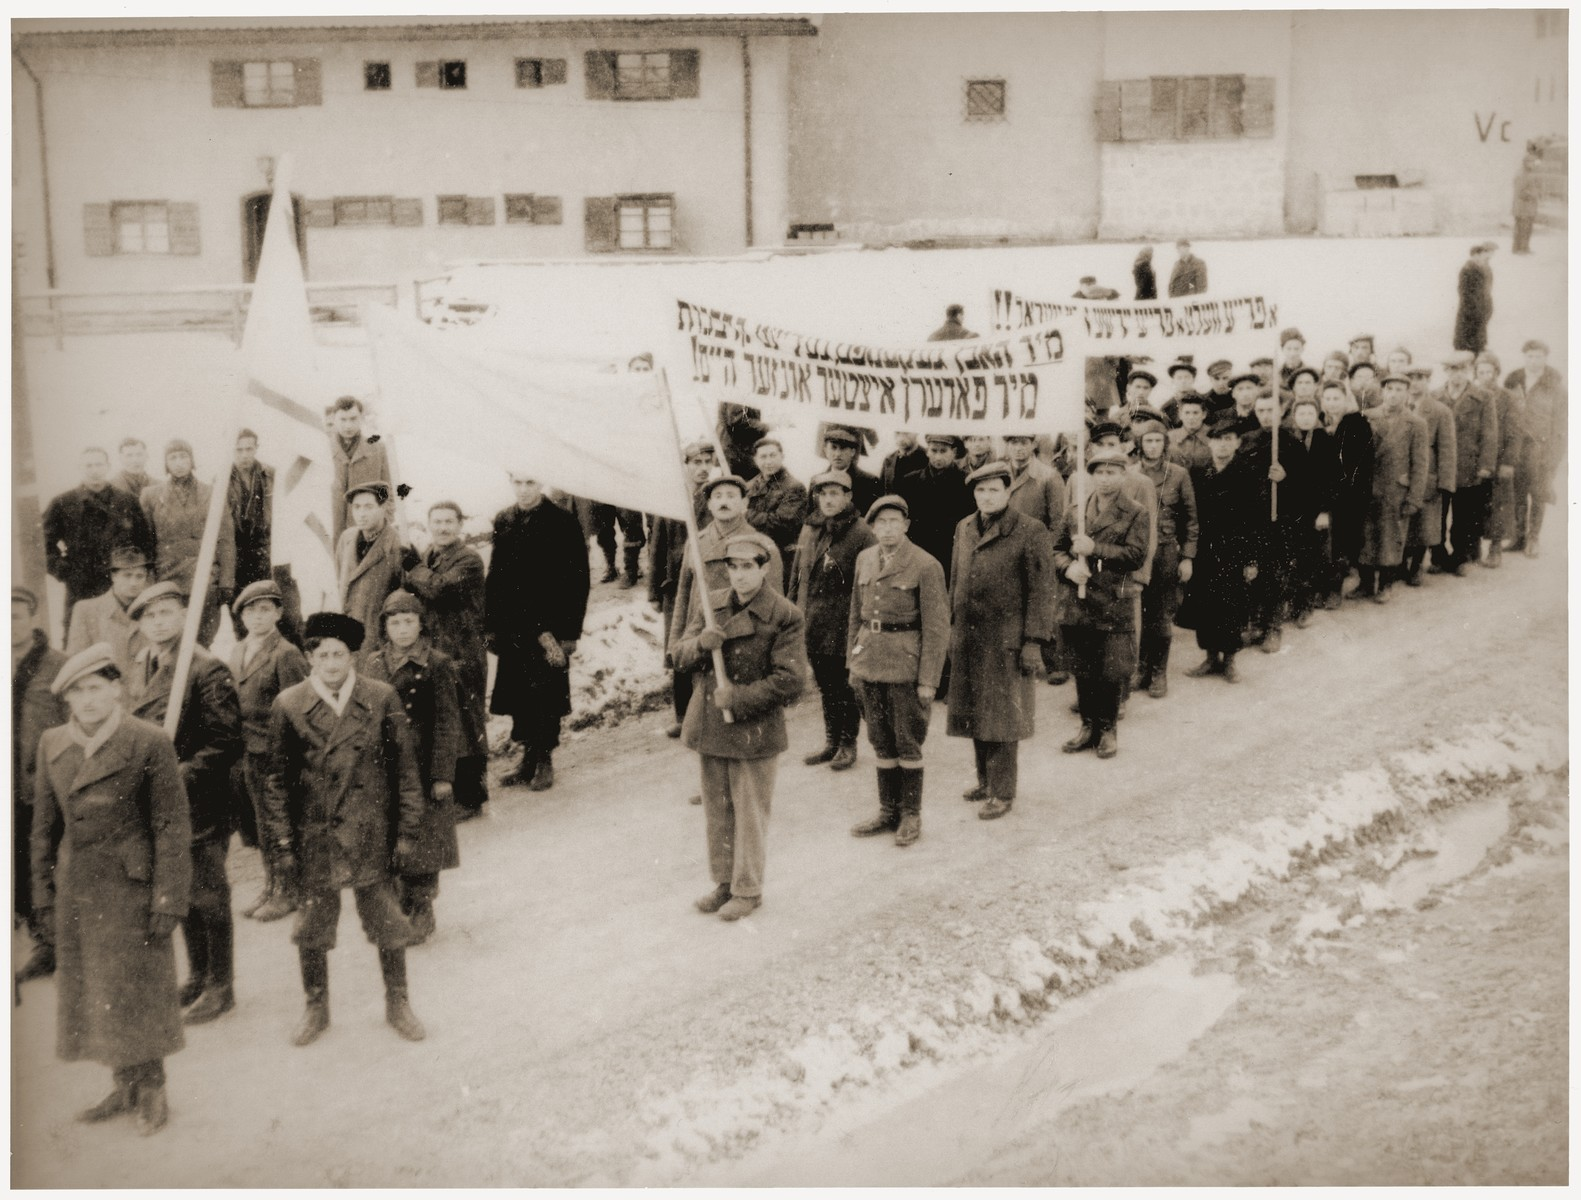 Jewish DPs at the Feldafing displaced persons camp march in protest against the refusal of the British government to open the gates of Palestine to Jewish immigration.